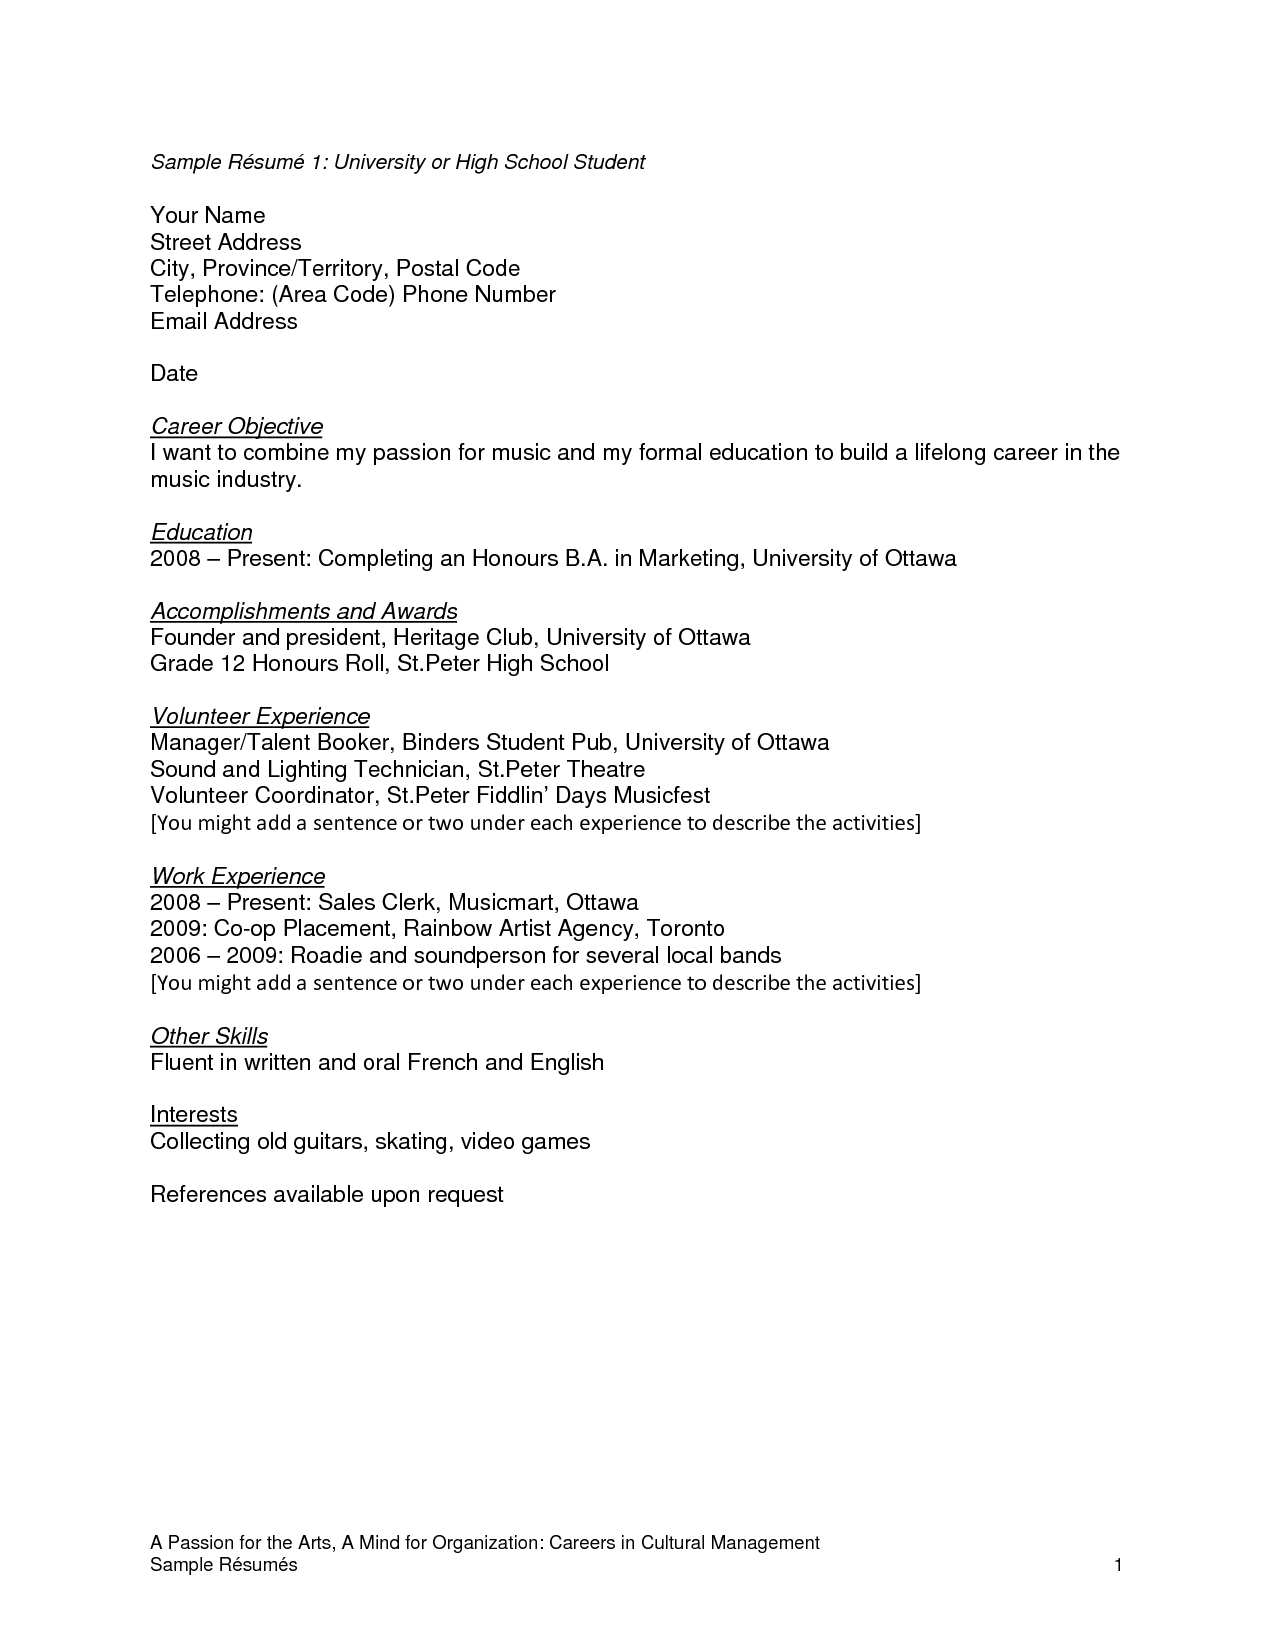 Resume Building Guide Job Guide Resume Builder Templates And Example For